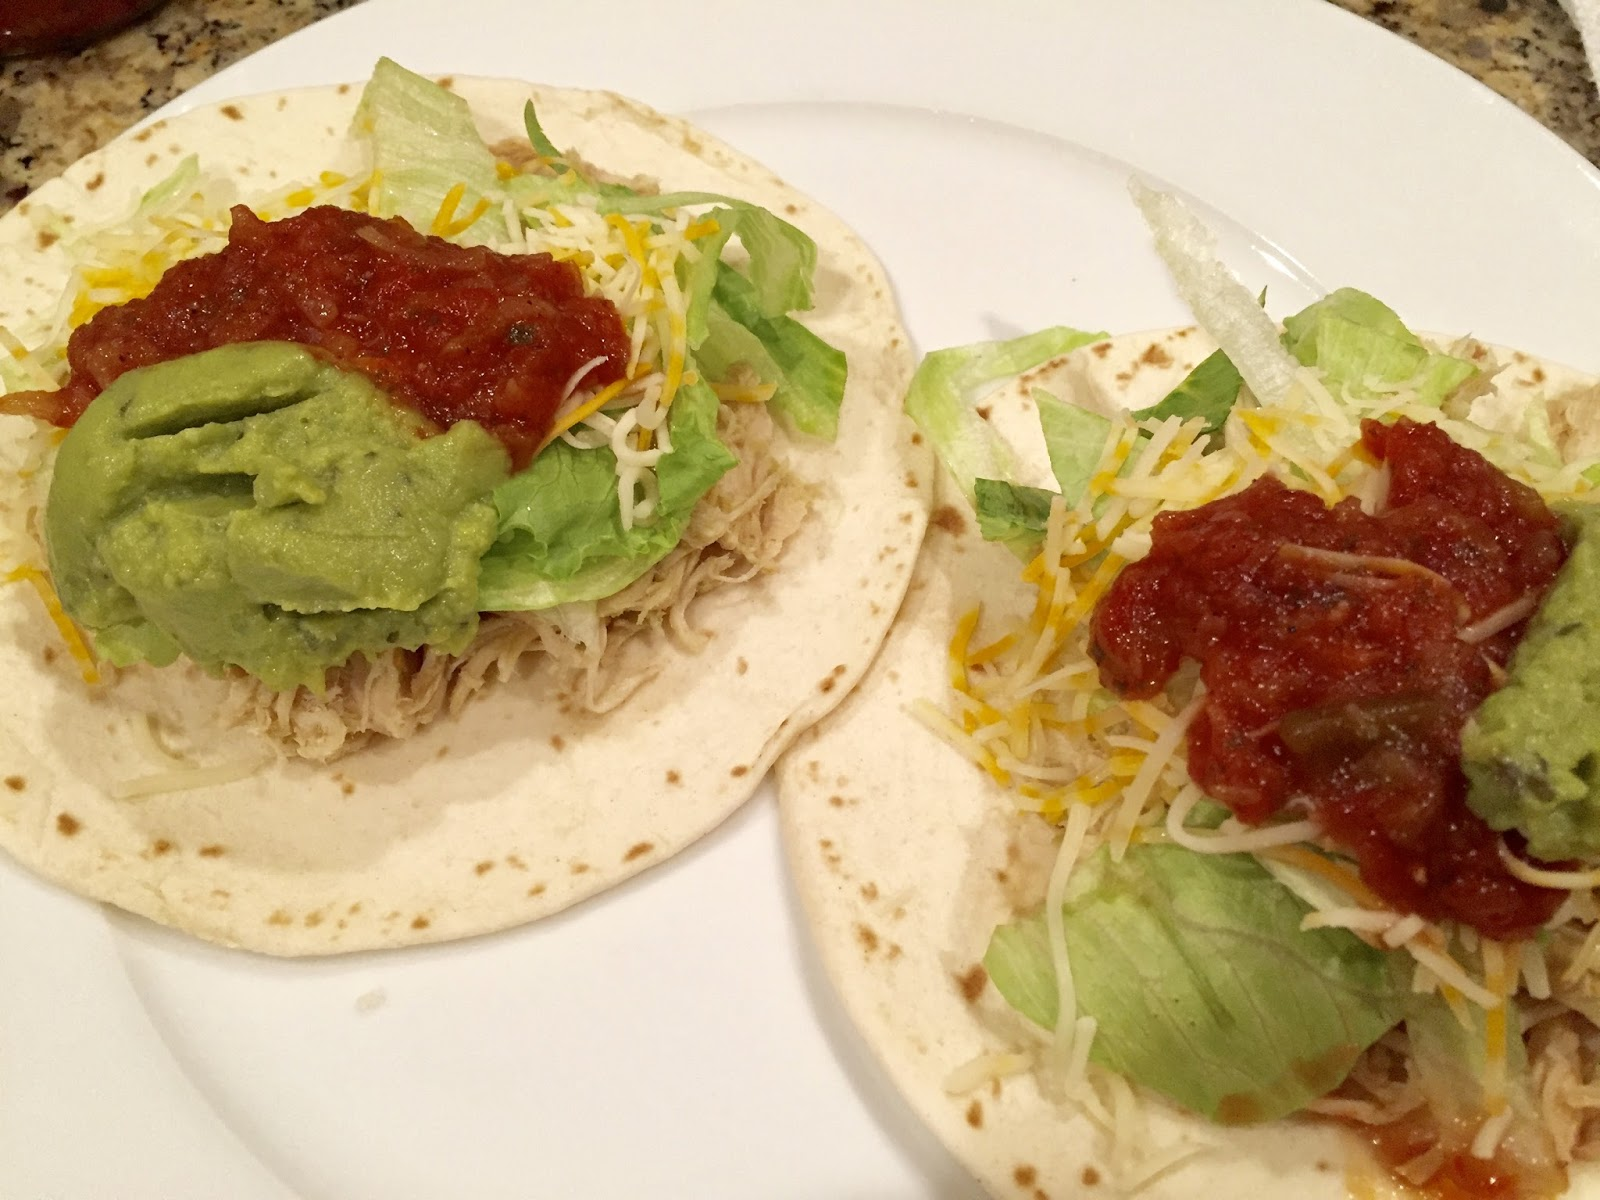 Crockpot salsa verde chicken tacos i use the term recipe loosely there are 3 ingredients this is a super easy weeknight meal and it serves enough for a family or you can have leftovers forumfinder Gallery